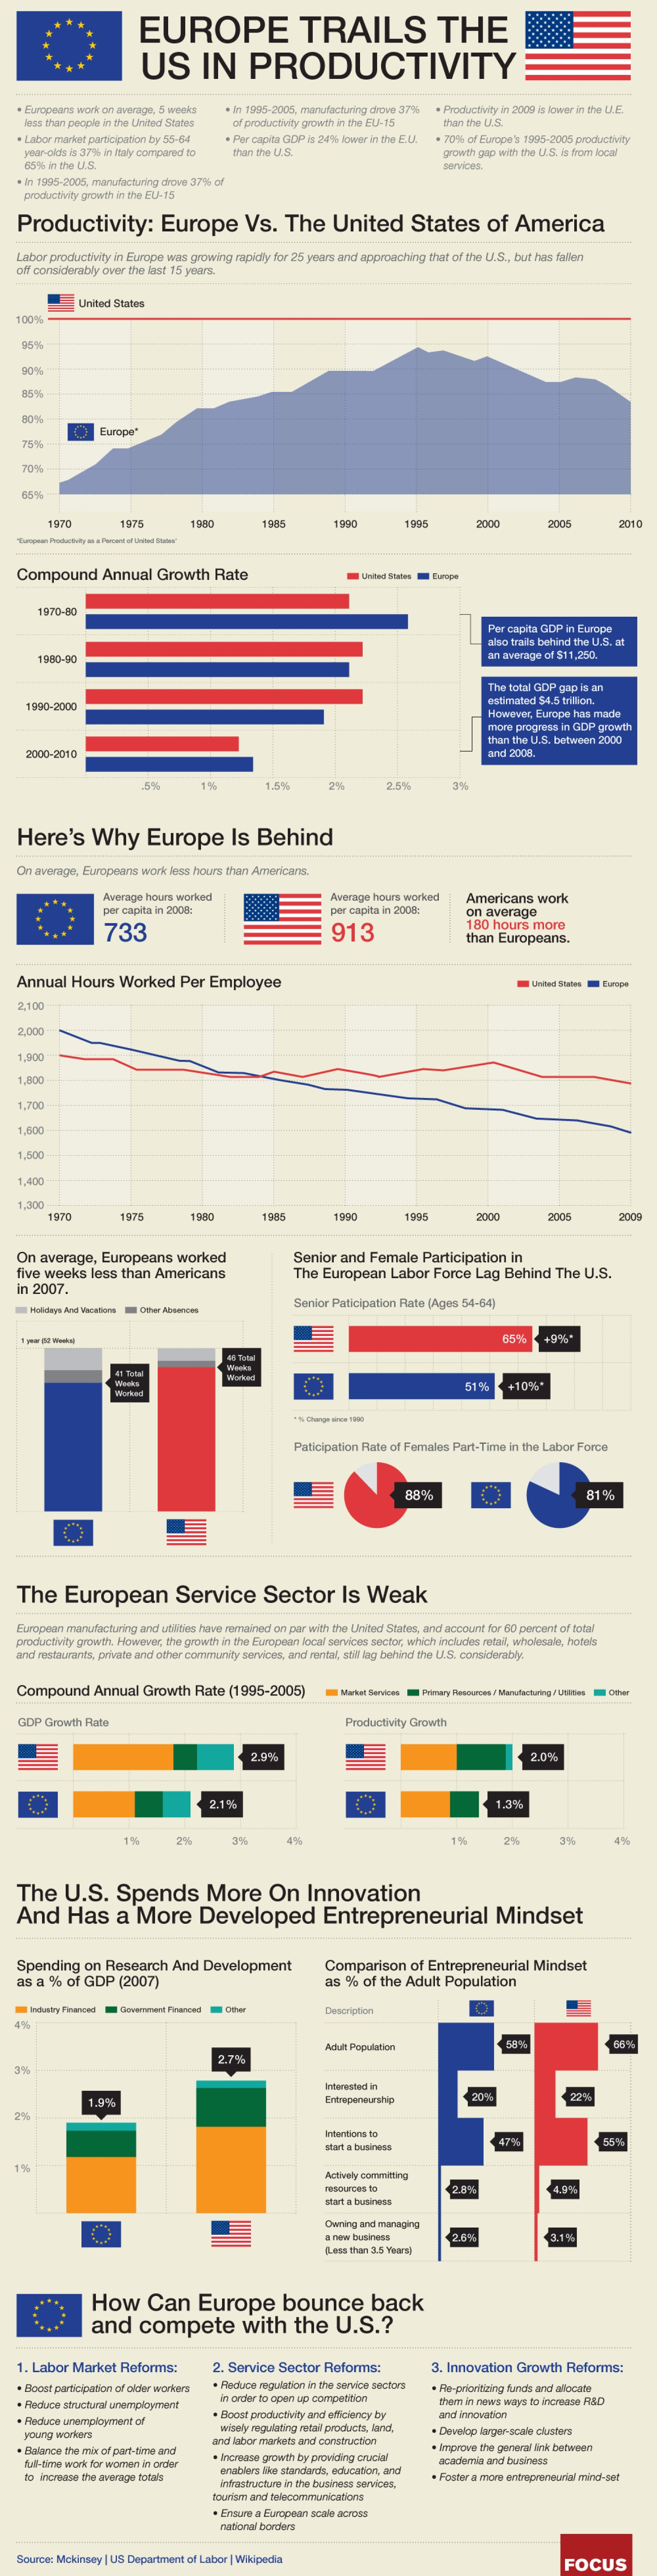 Do Europeans Work More Than Americans